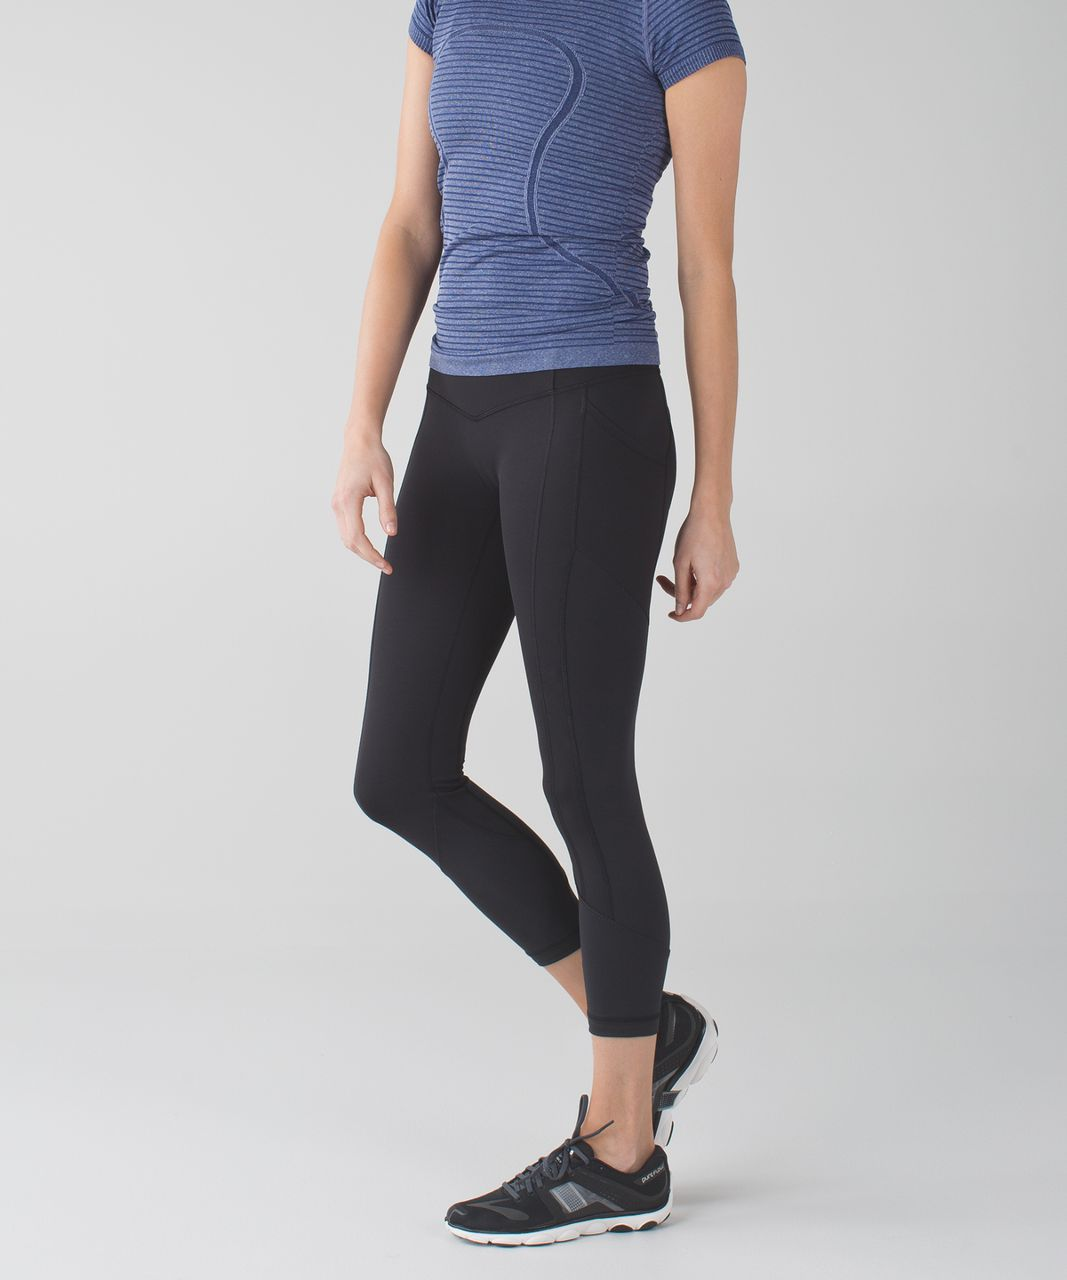 Lululemon All The Right Places Crop II - Black